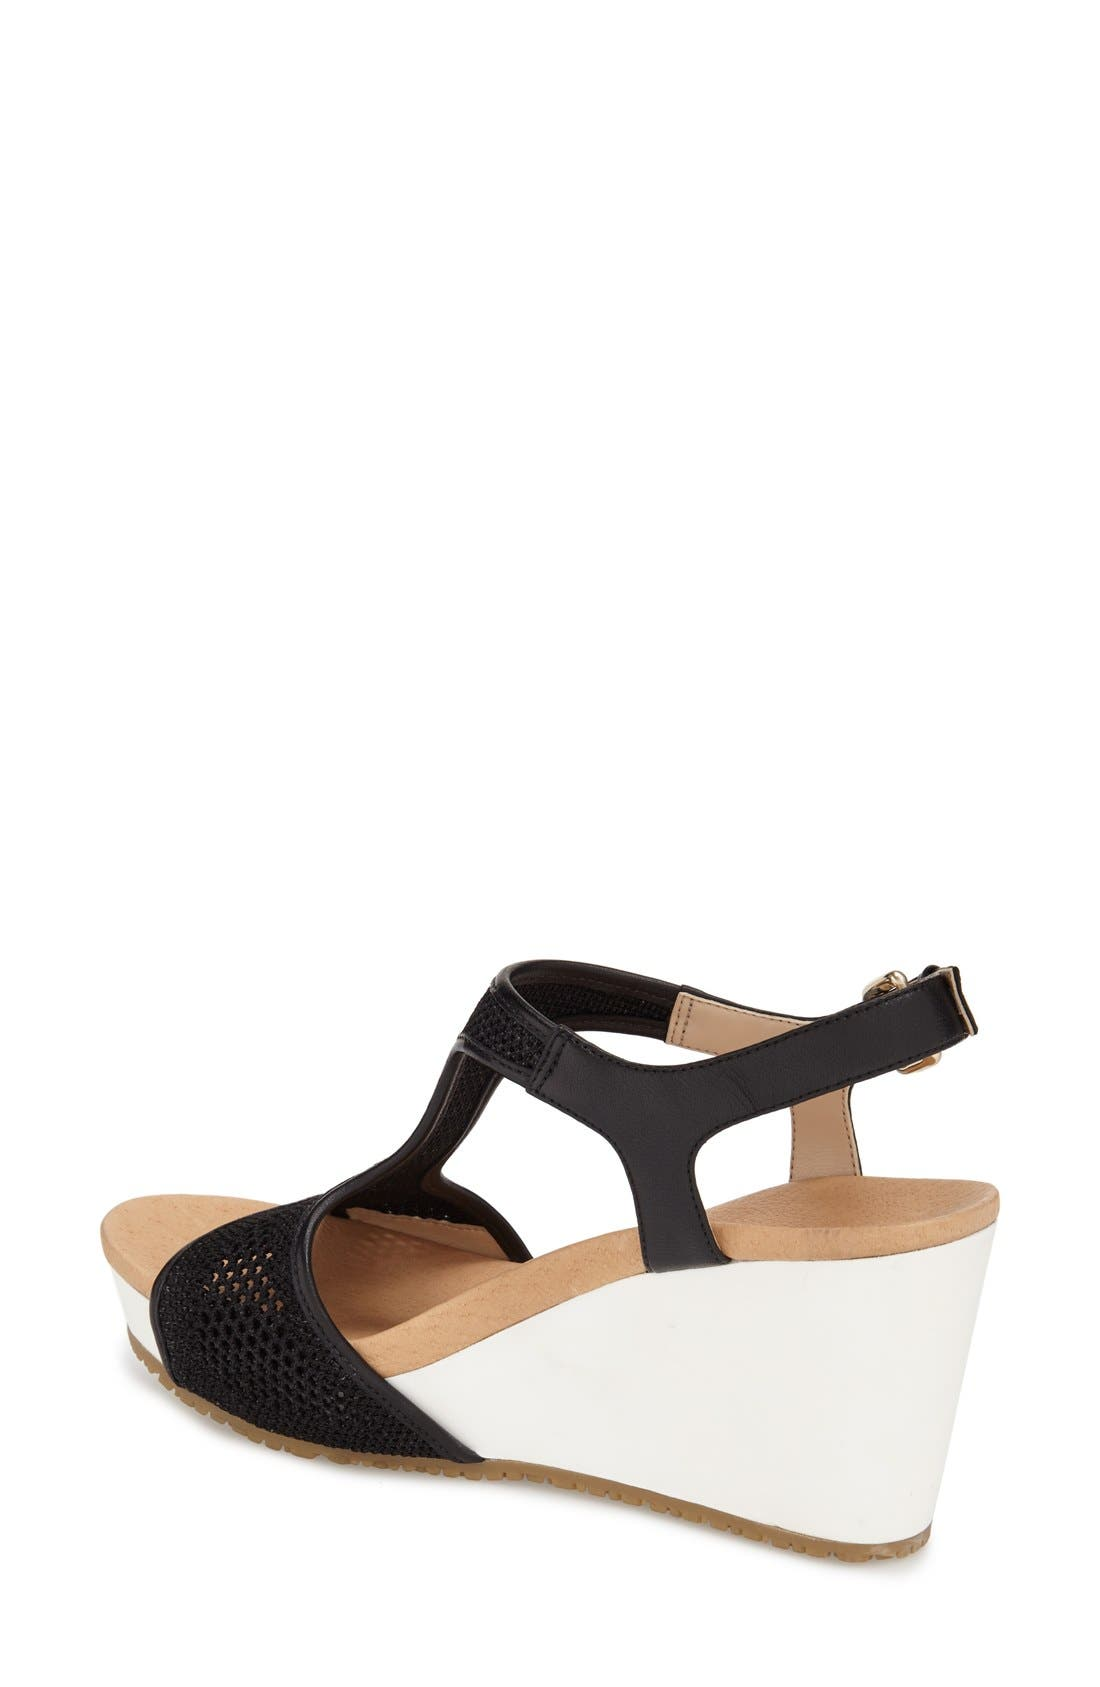 'Original Collection Wiley' Wedge Sandal,                             Alternate thumbnail 4, color,                             001